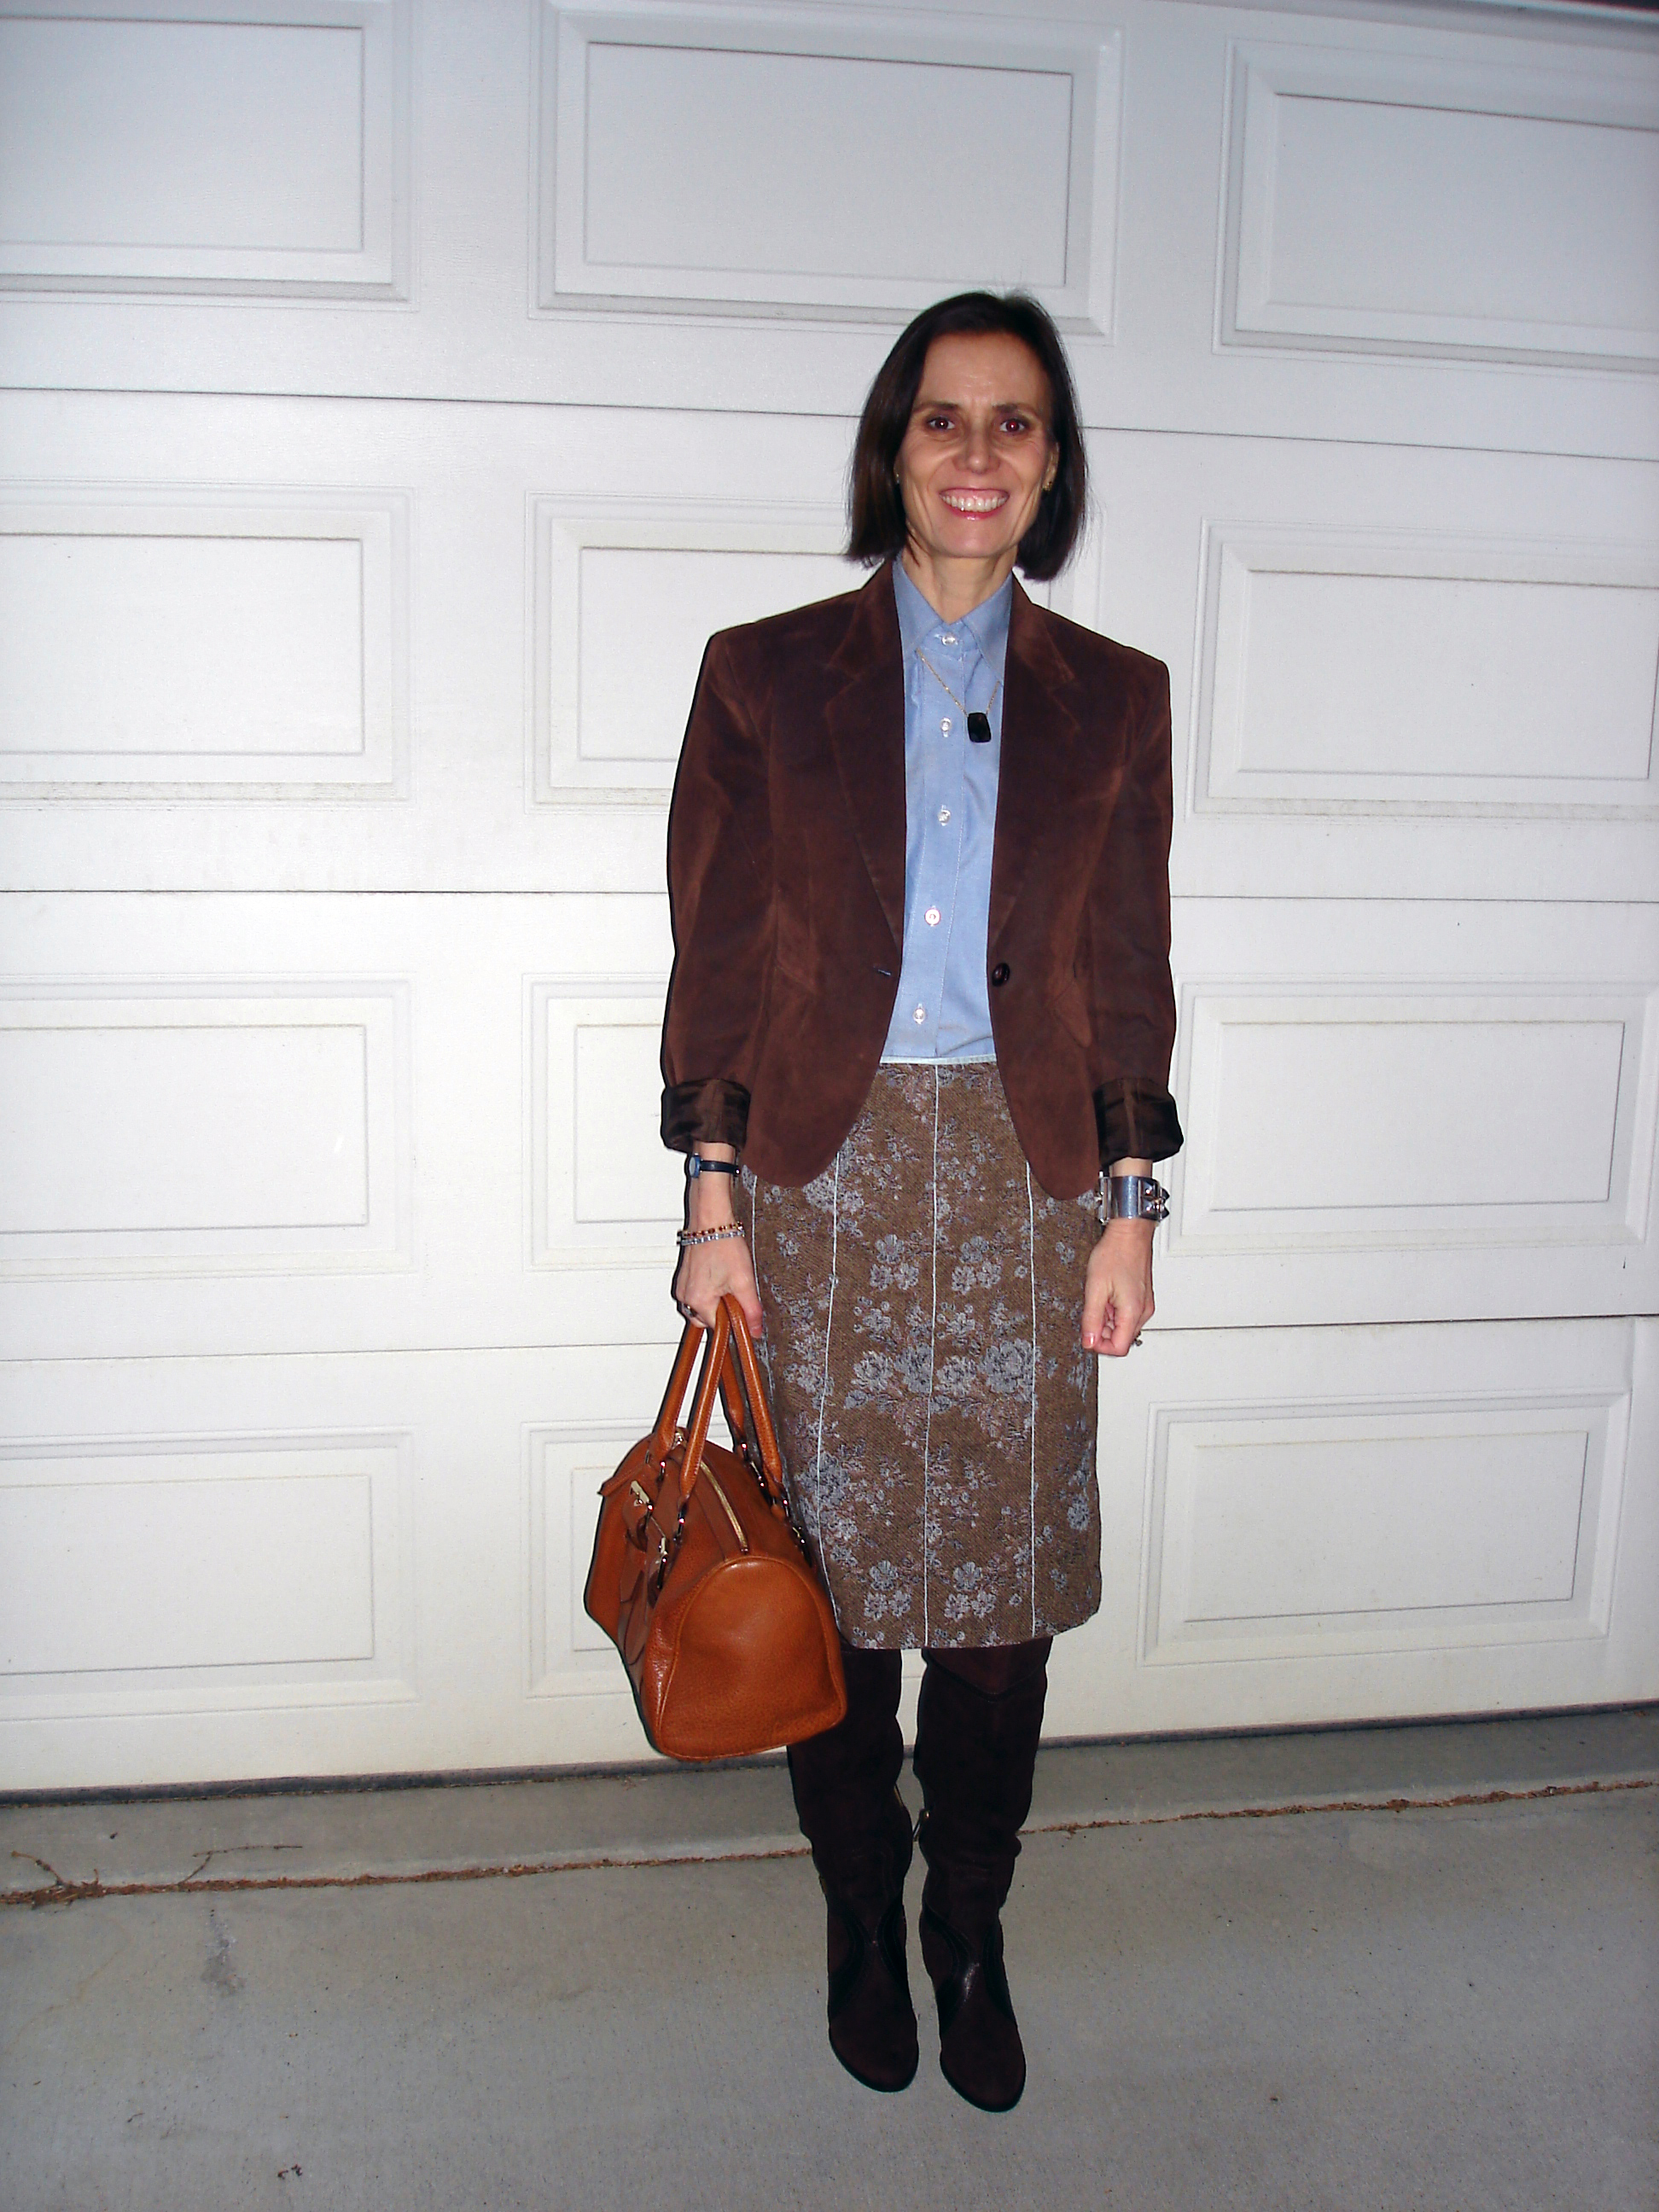 great outfits for a successful job interview high latitude style interviewoutfit winter job interview outfit for mature women